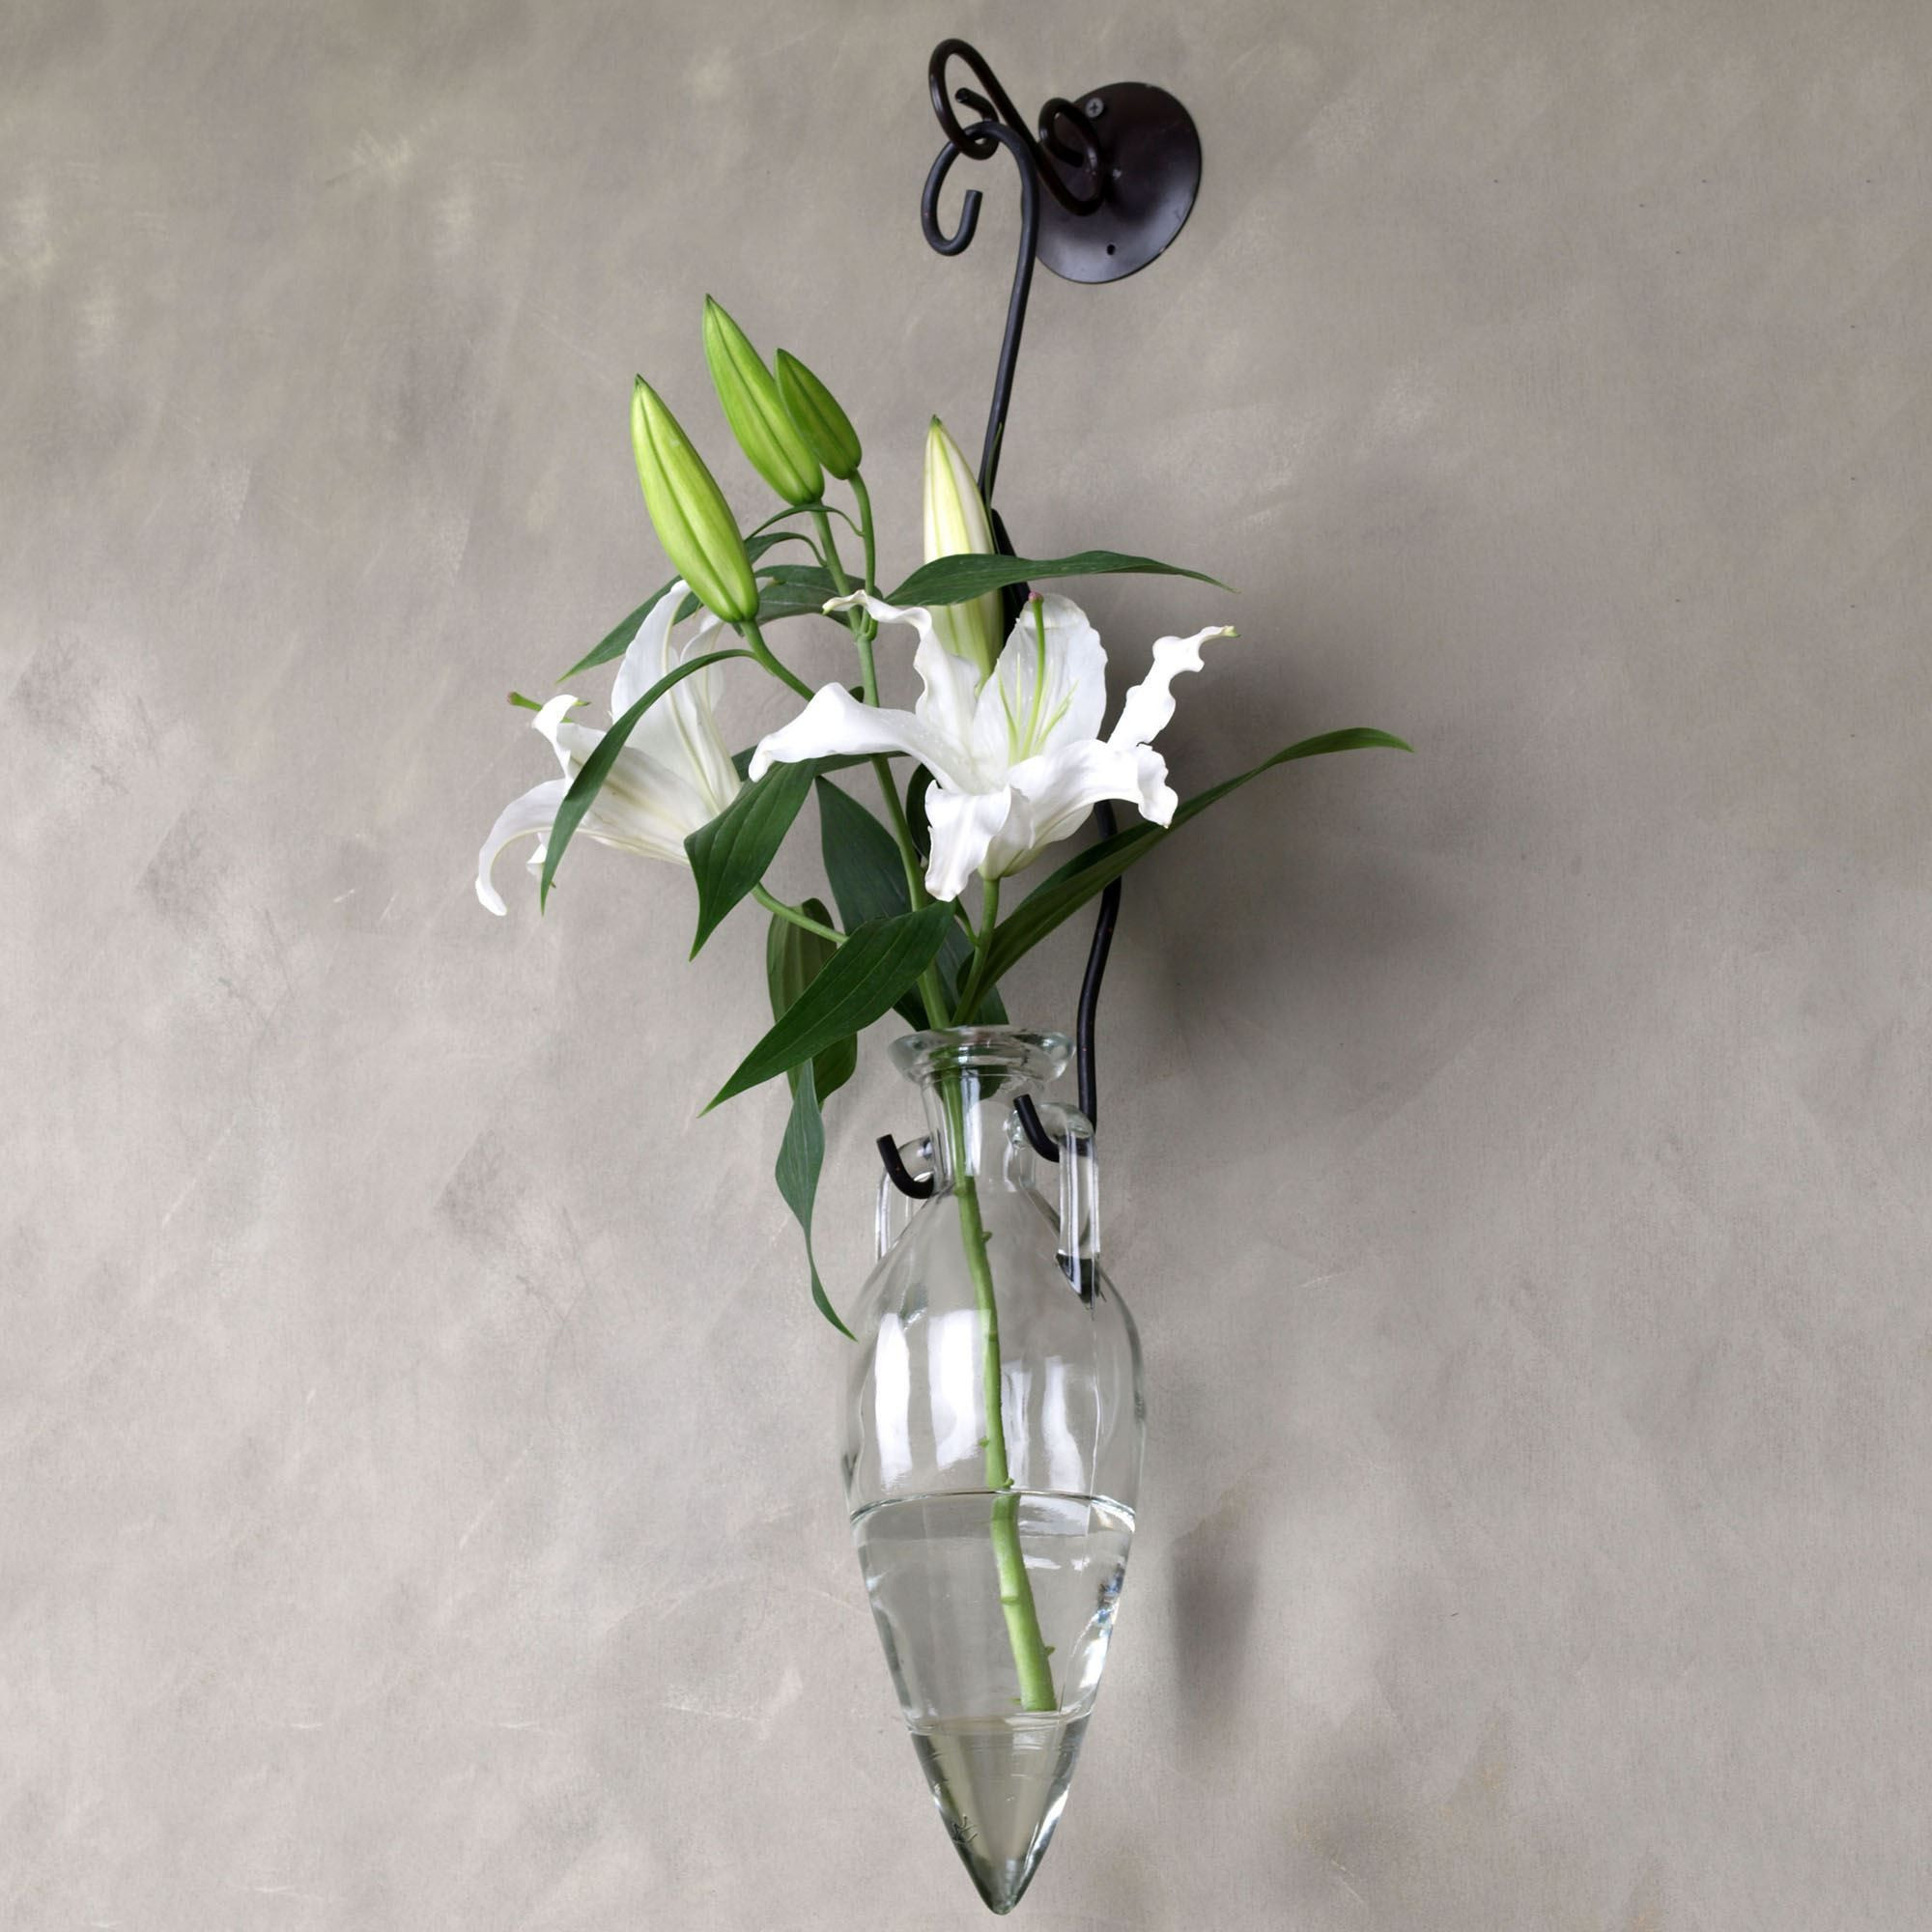 aegean clear glass vases of pottery barn glass vase awesome wall glass vase vase and cellar pertaining to pottery barn glass vase awesome wall glass vase vase and cellar image avorcor